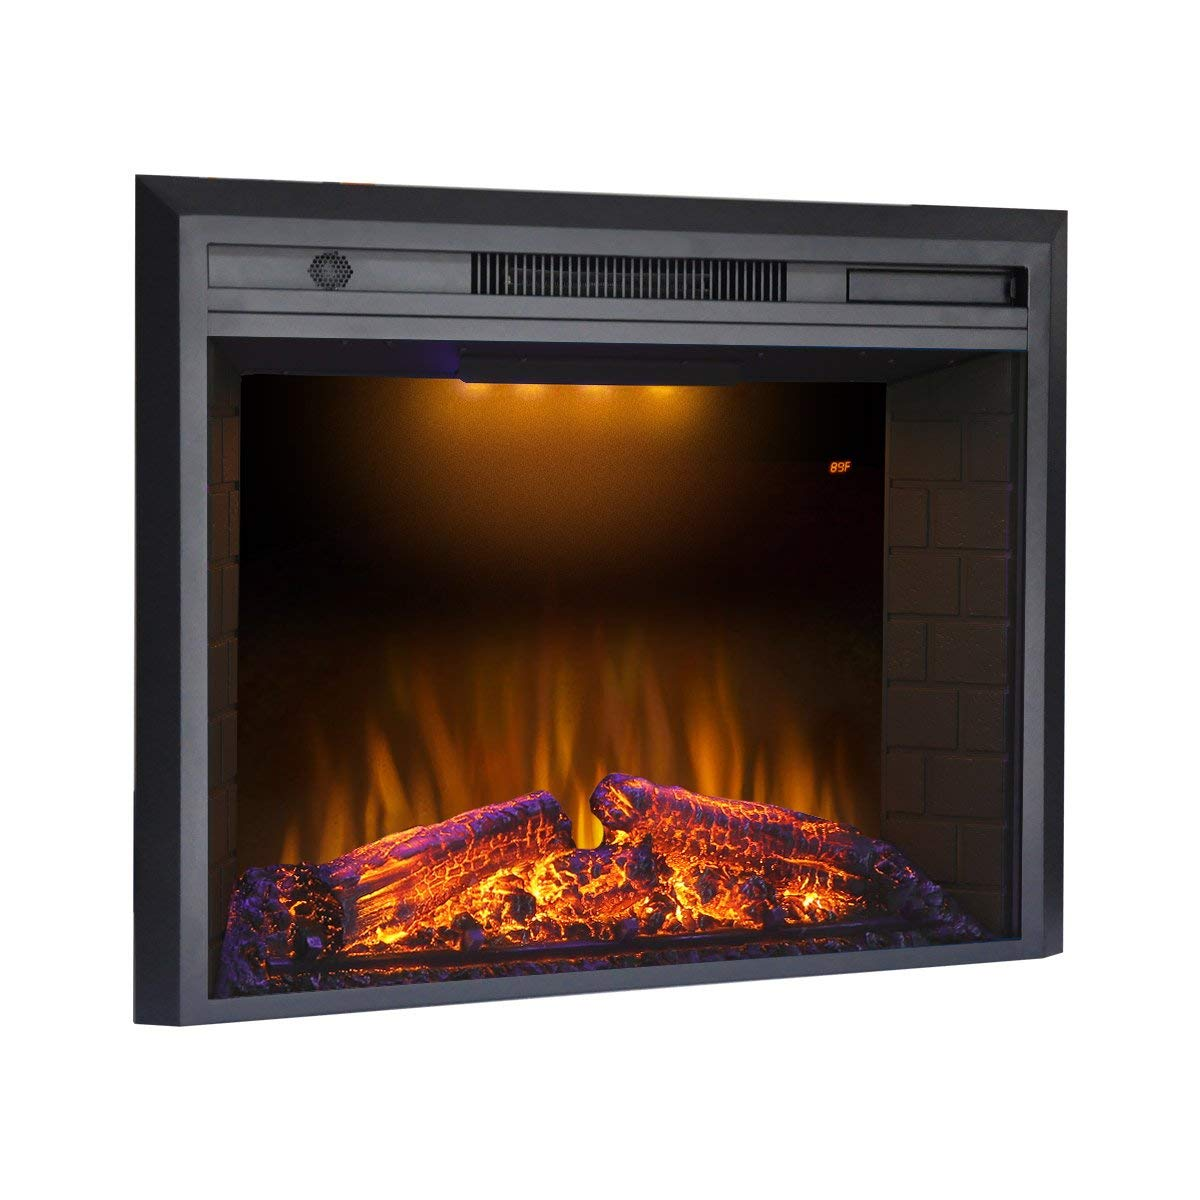 "Valuxhome Houselux 36"" 750W/1500W, Electric Fireplace Insert with Log Speaker, Remote Control, Black"